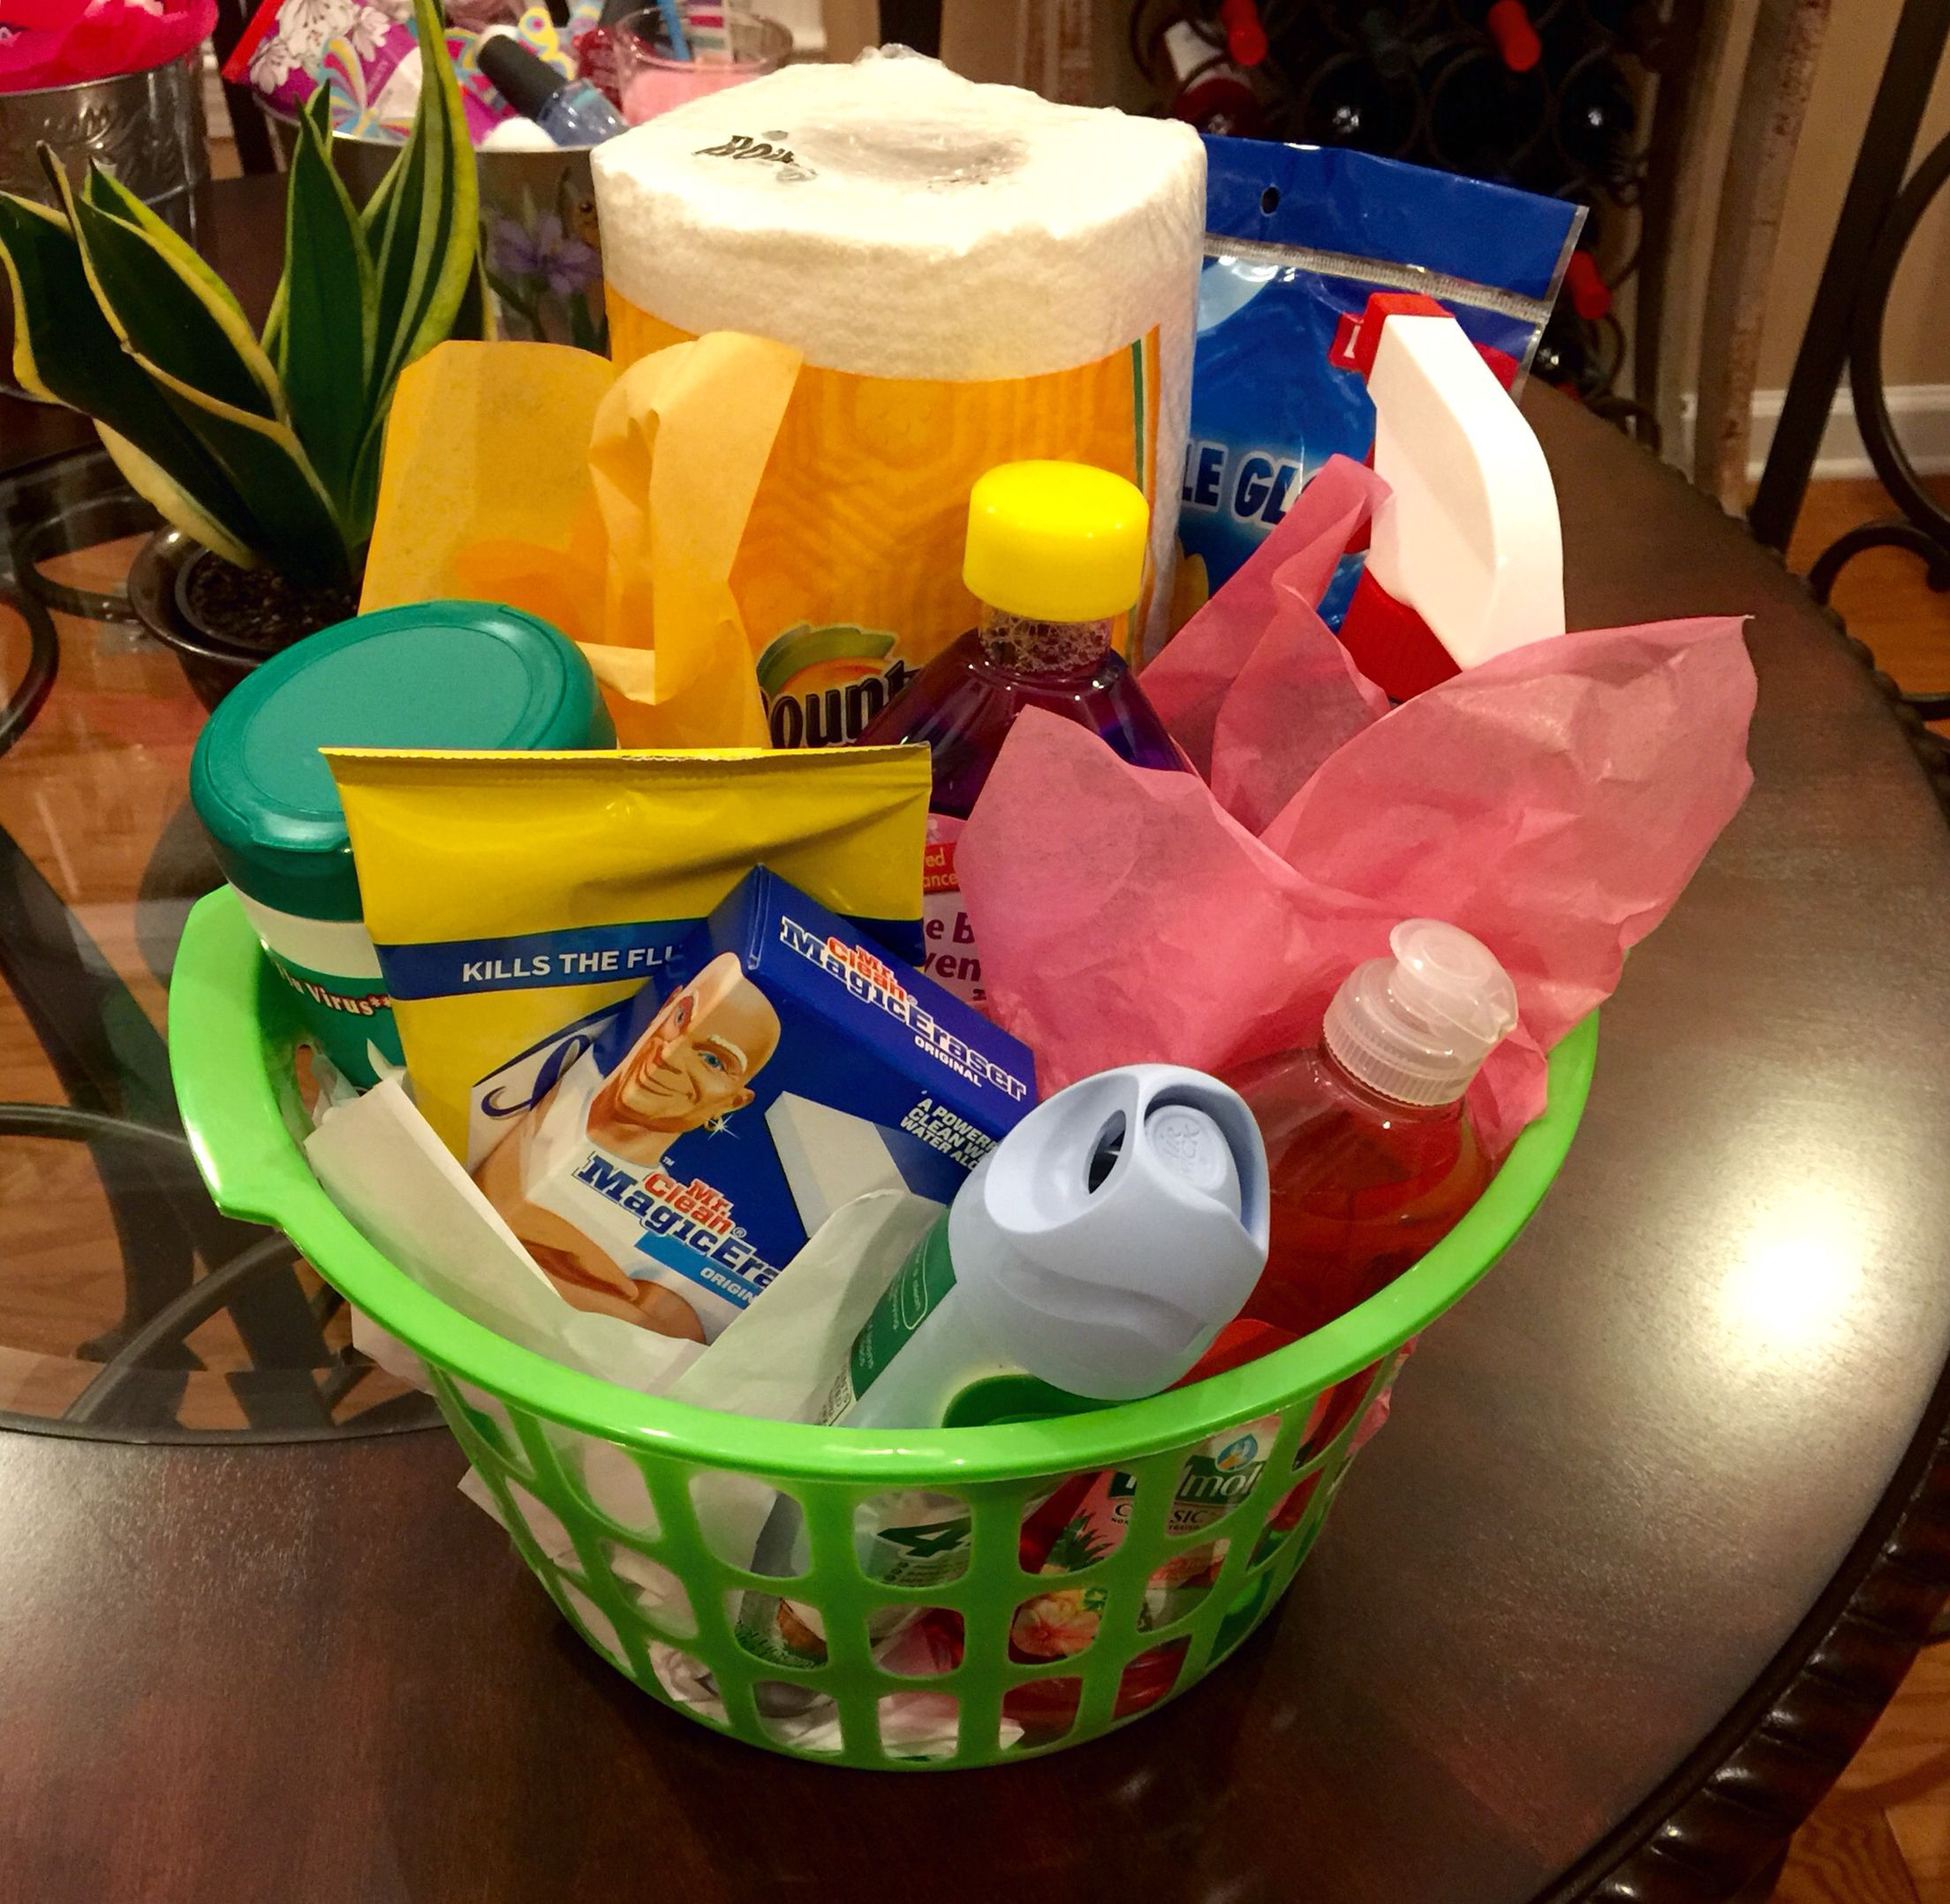 Home Design Gift Ideas:  Home Cleaning Gift Basket Made By Me. Everything From The